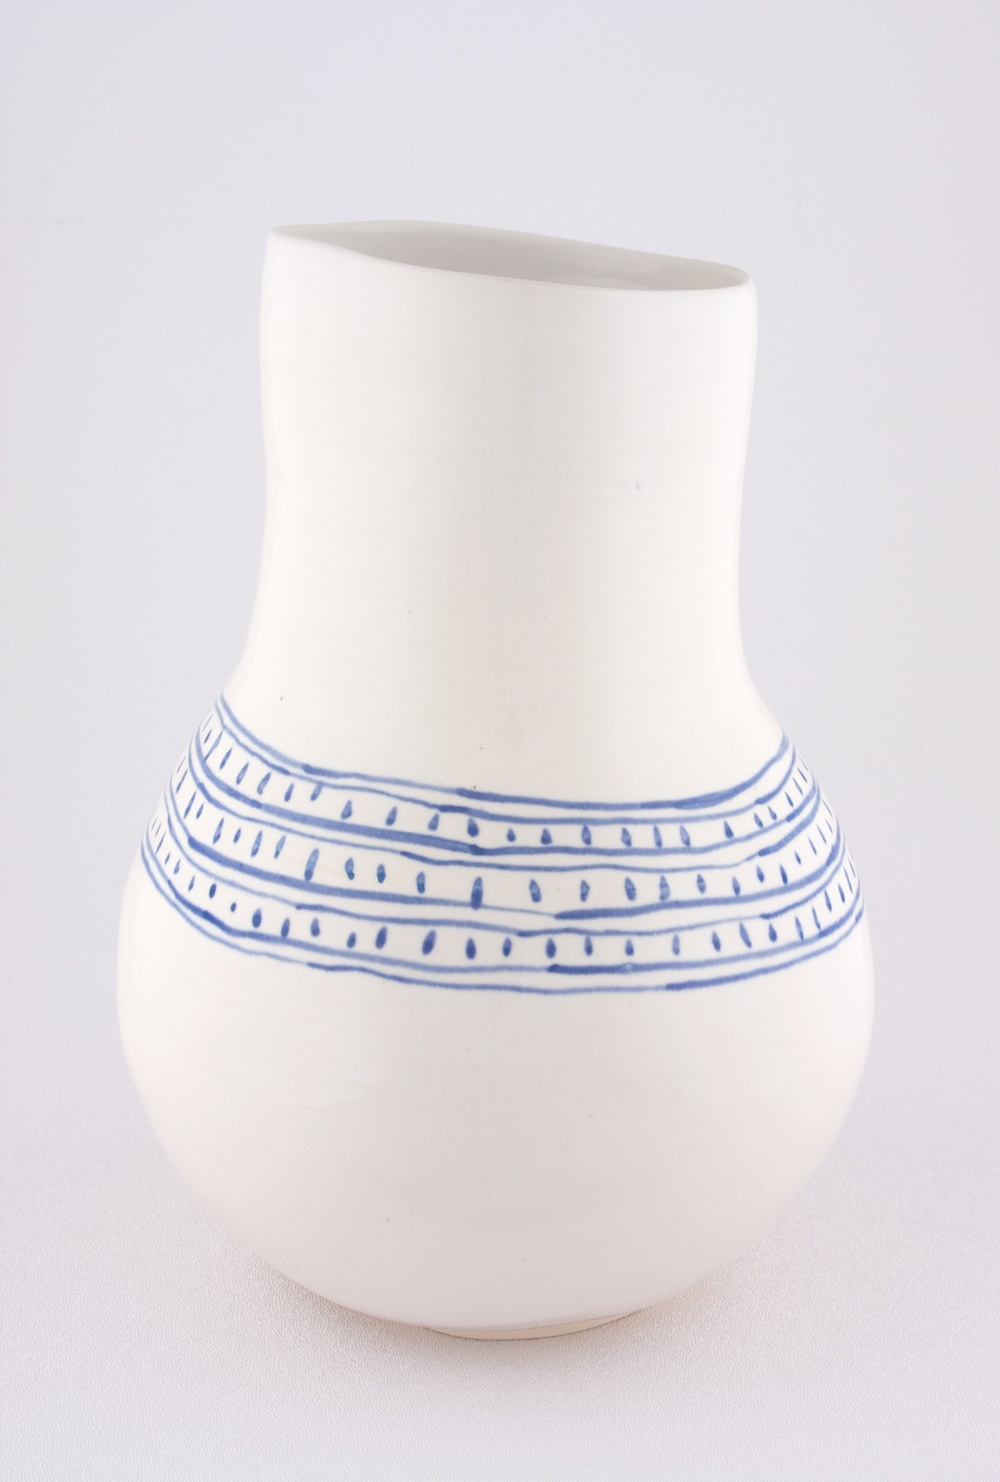 Shio Kusaka  Untitled (blue line and dot)  2009 Porcelain 9 ¾h x 7w in SK055